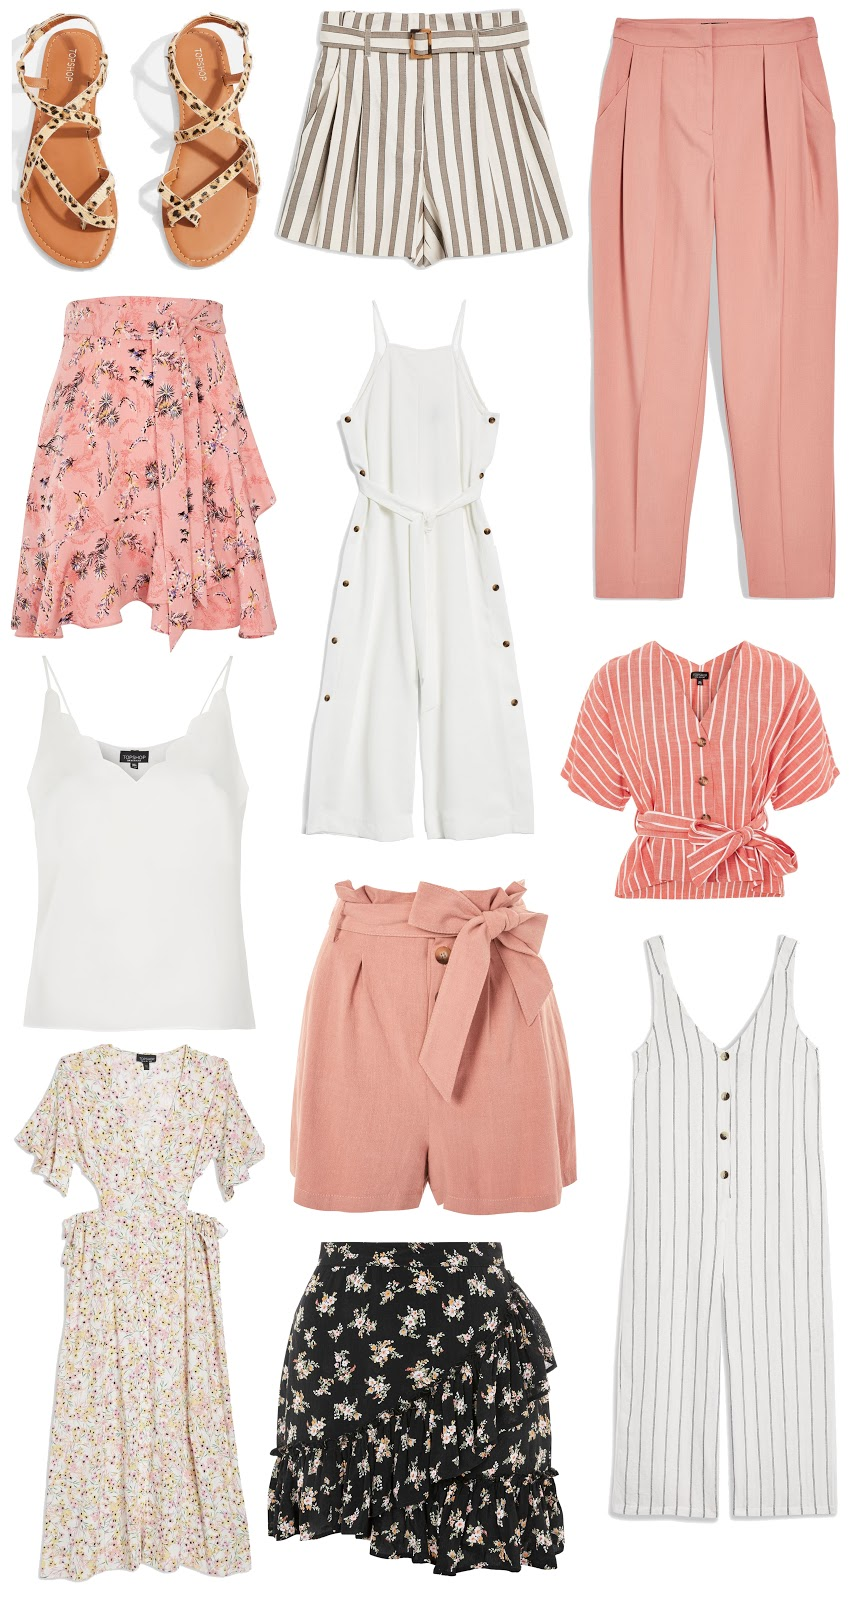 da6a2a6844 Leopard Print Sandals £18.00 ∙ Taupe Striped Shorts £32.00 ∙ Tapered  Trousers £25.00 ∙ Ruffle Tie Mini Skirt £29.00 ∙ Button Playsuit £49.00 ∙  Striped ...